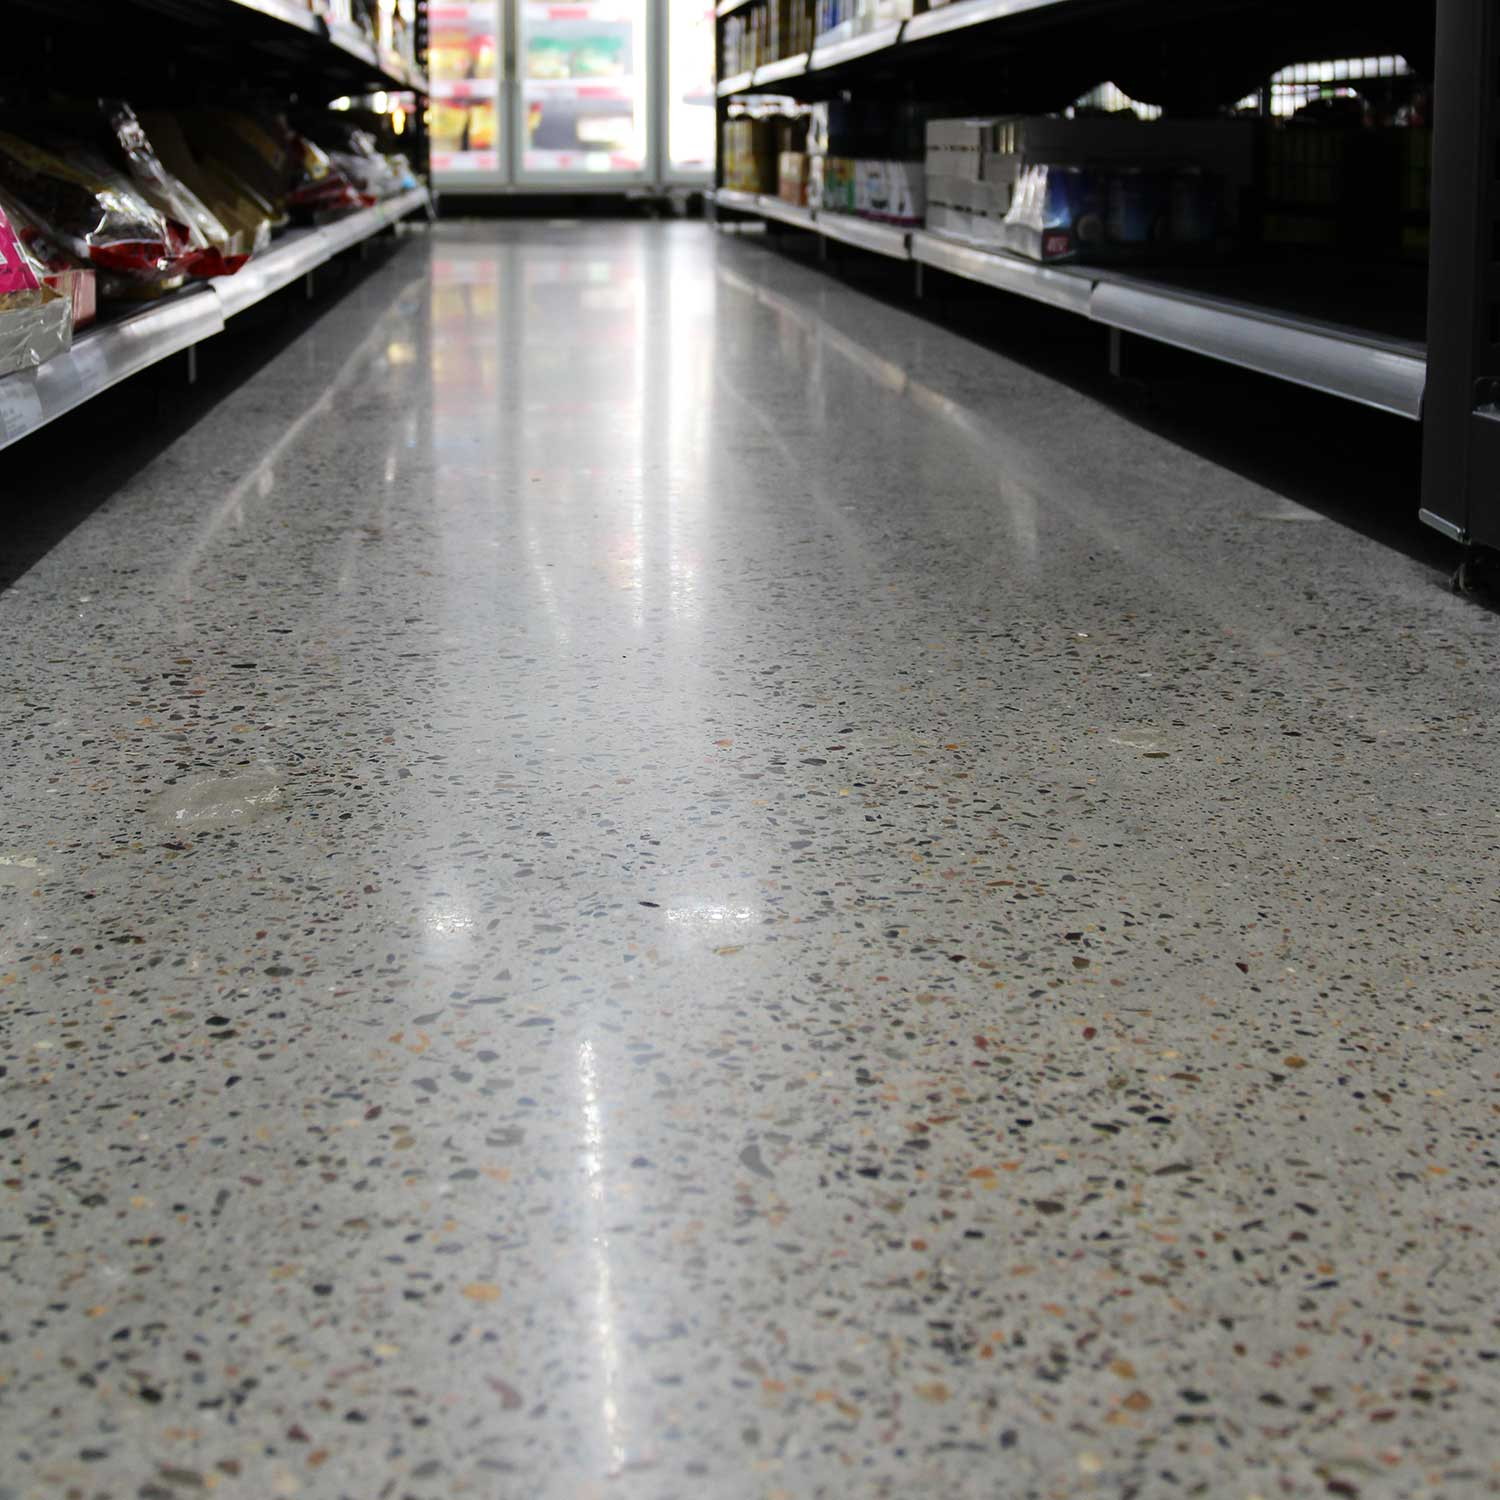 Industrial Flooring Brisbane: Commercial & Retail Concrete Floor Polishing